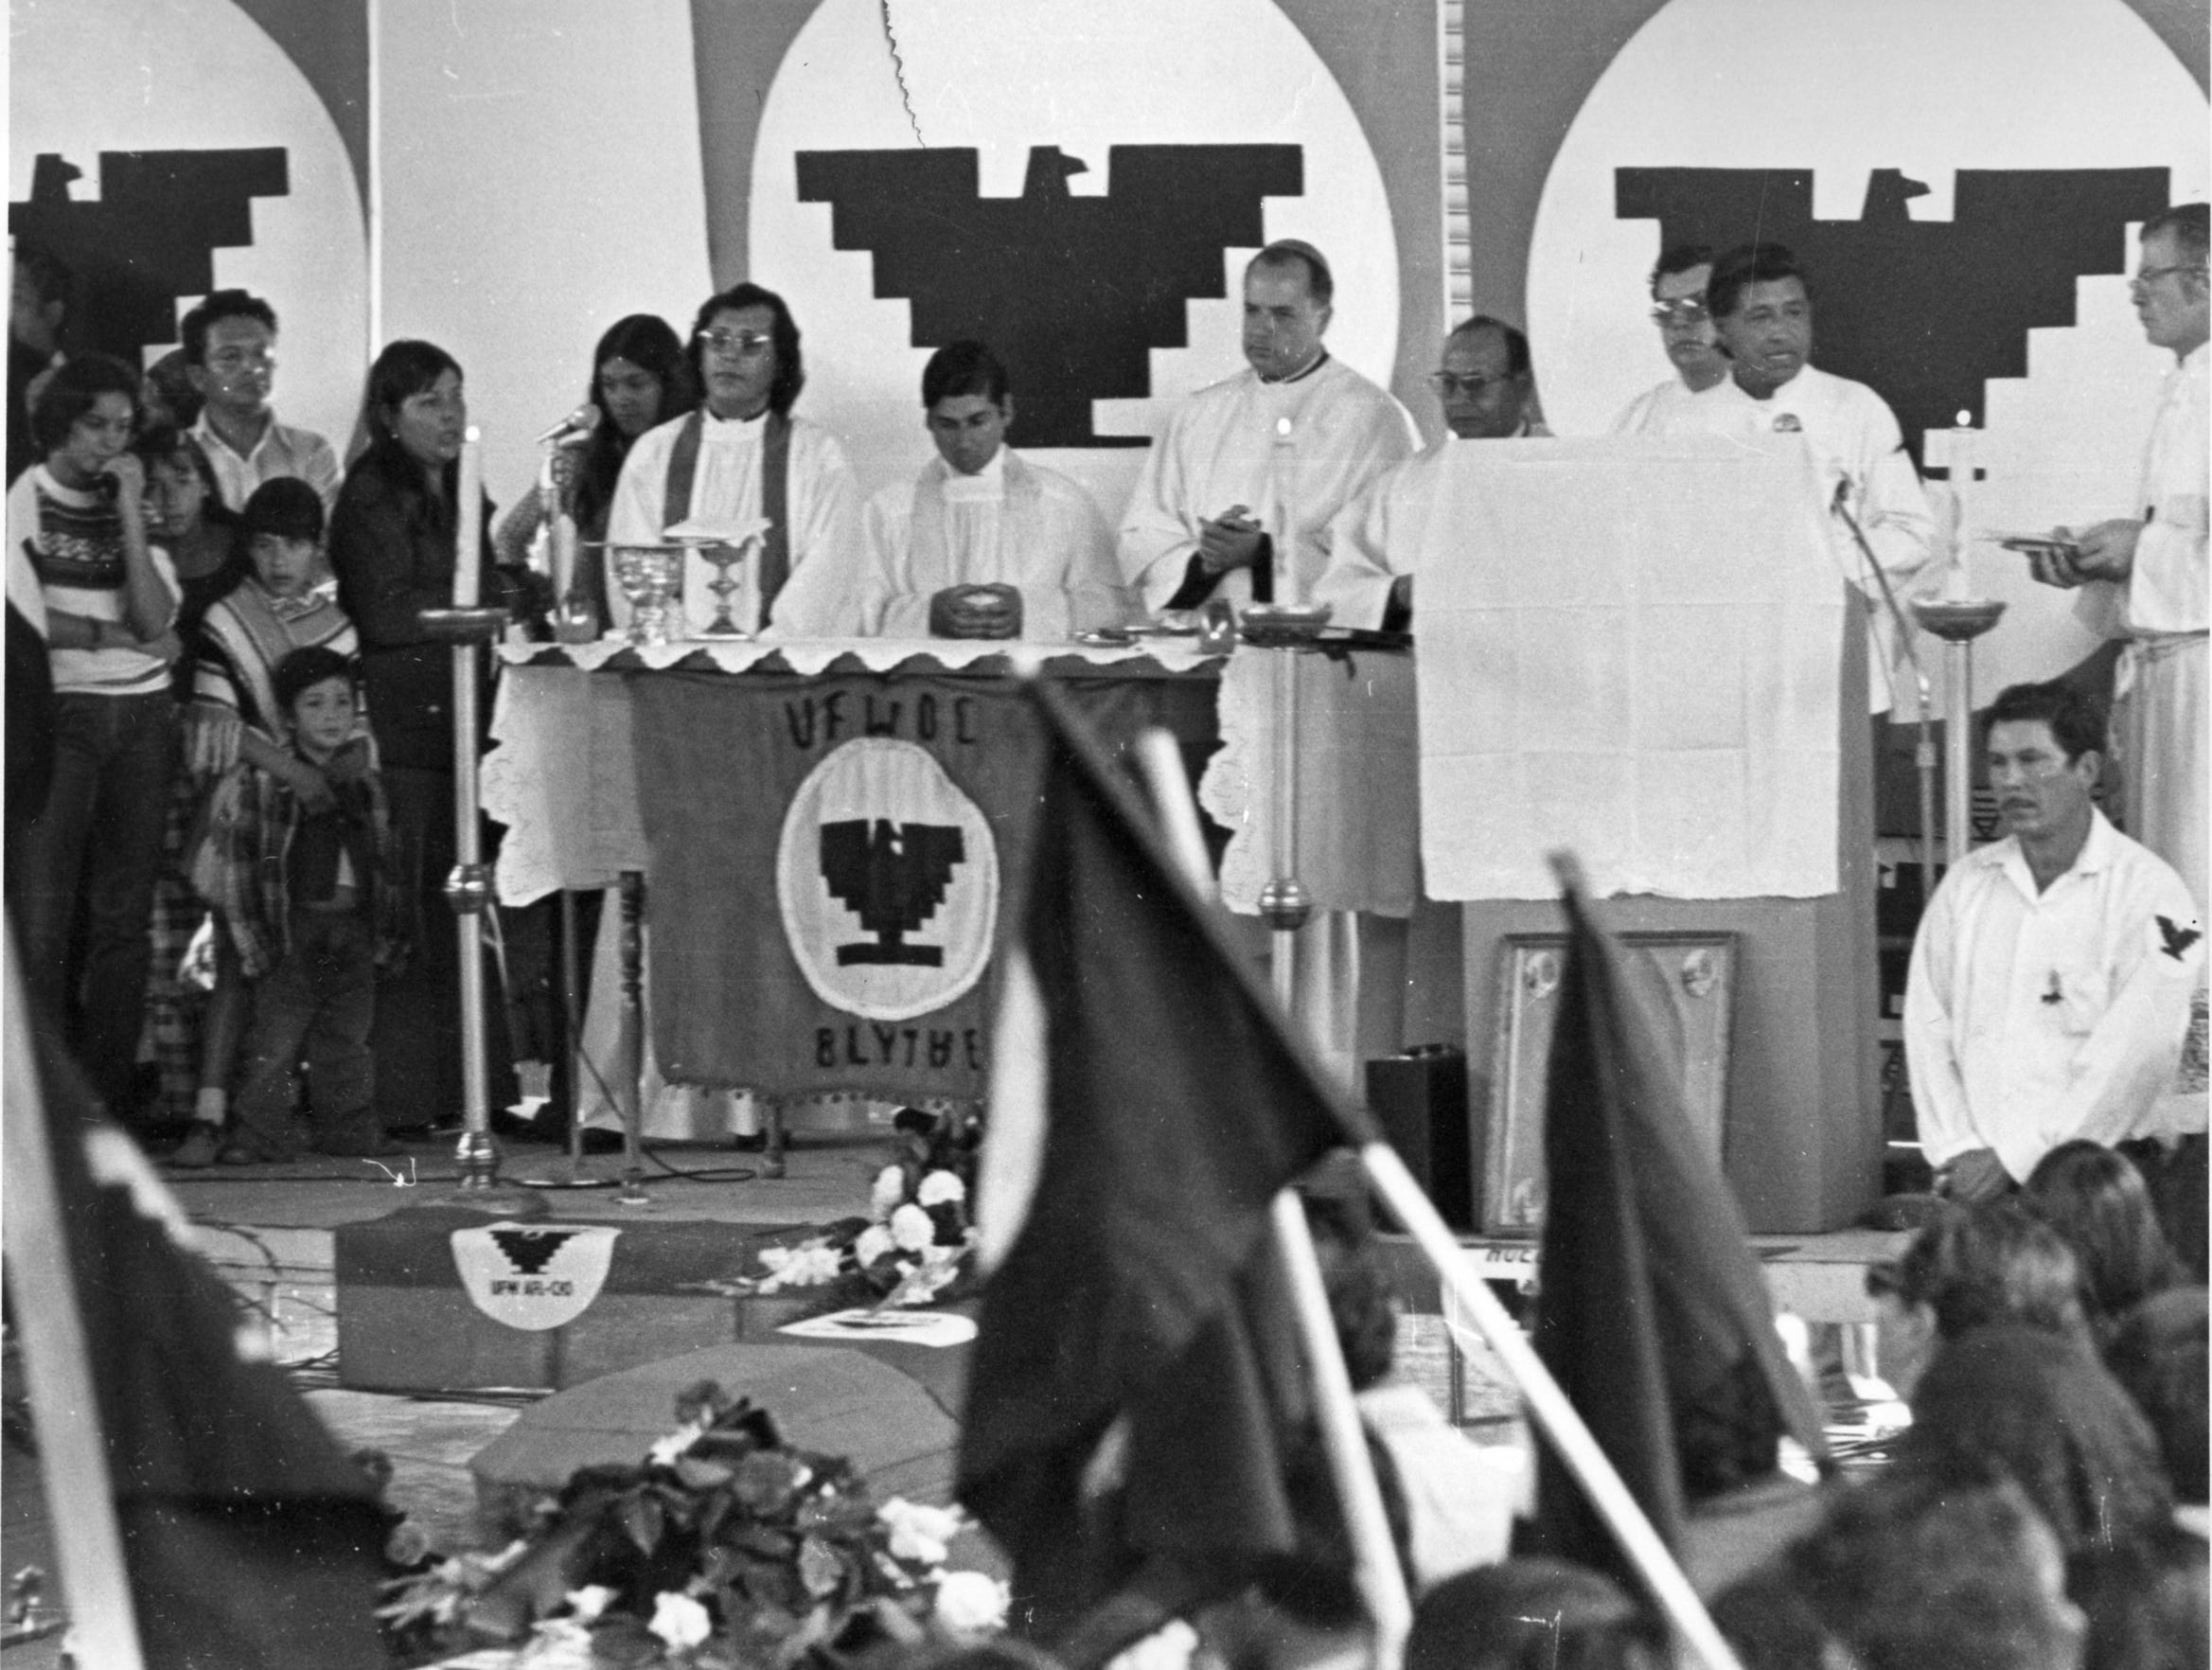 Cesar Chavez, leader of the United Farm Workers, speaks at a mass in Calexico following the deaths of 19 farm laborers.